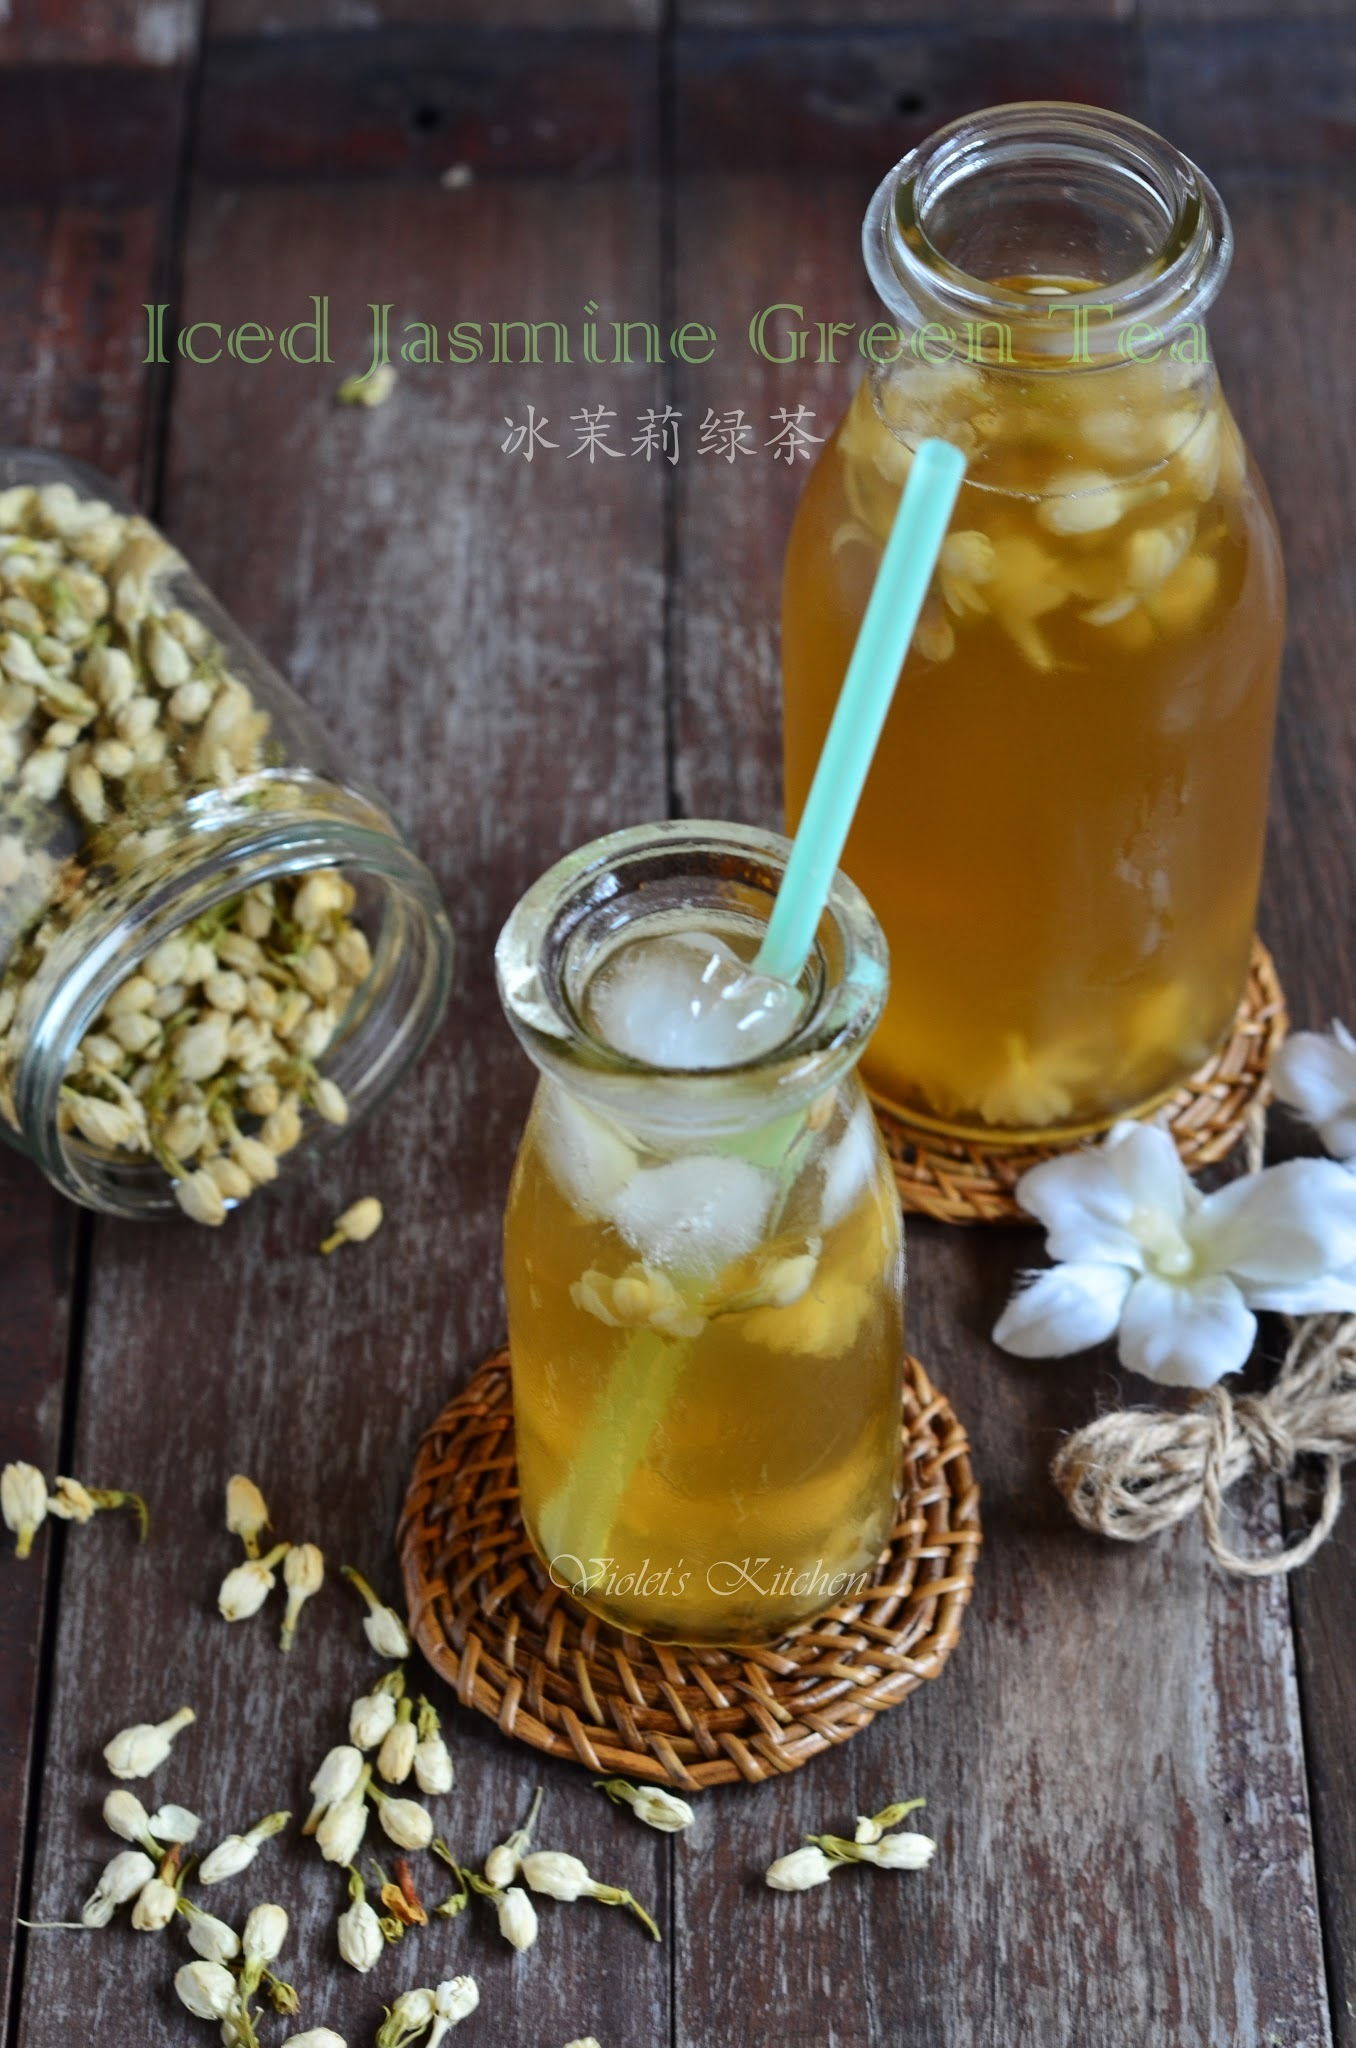 冰茉莉绿茶 Iced Jasmine Green Tea